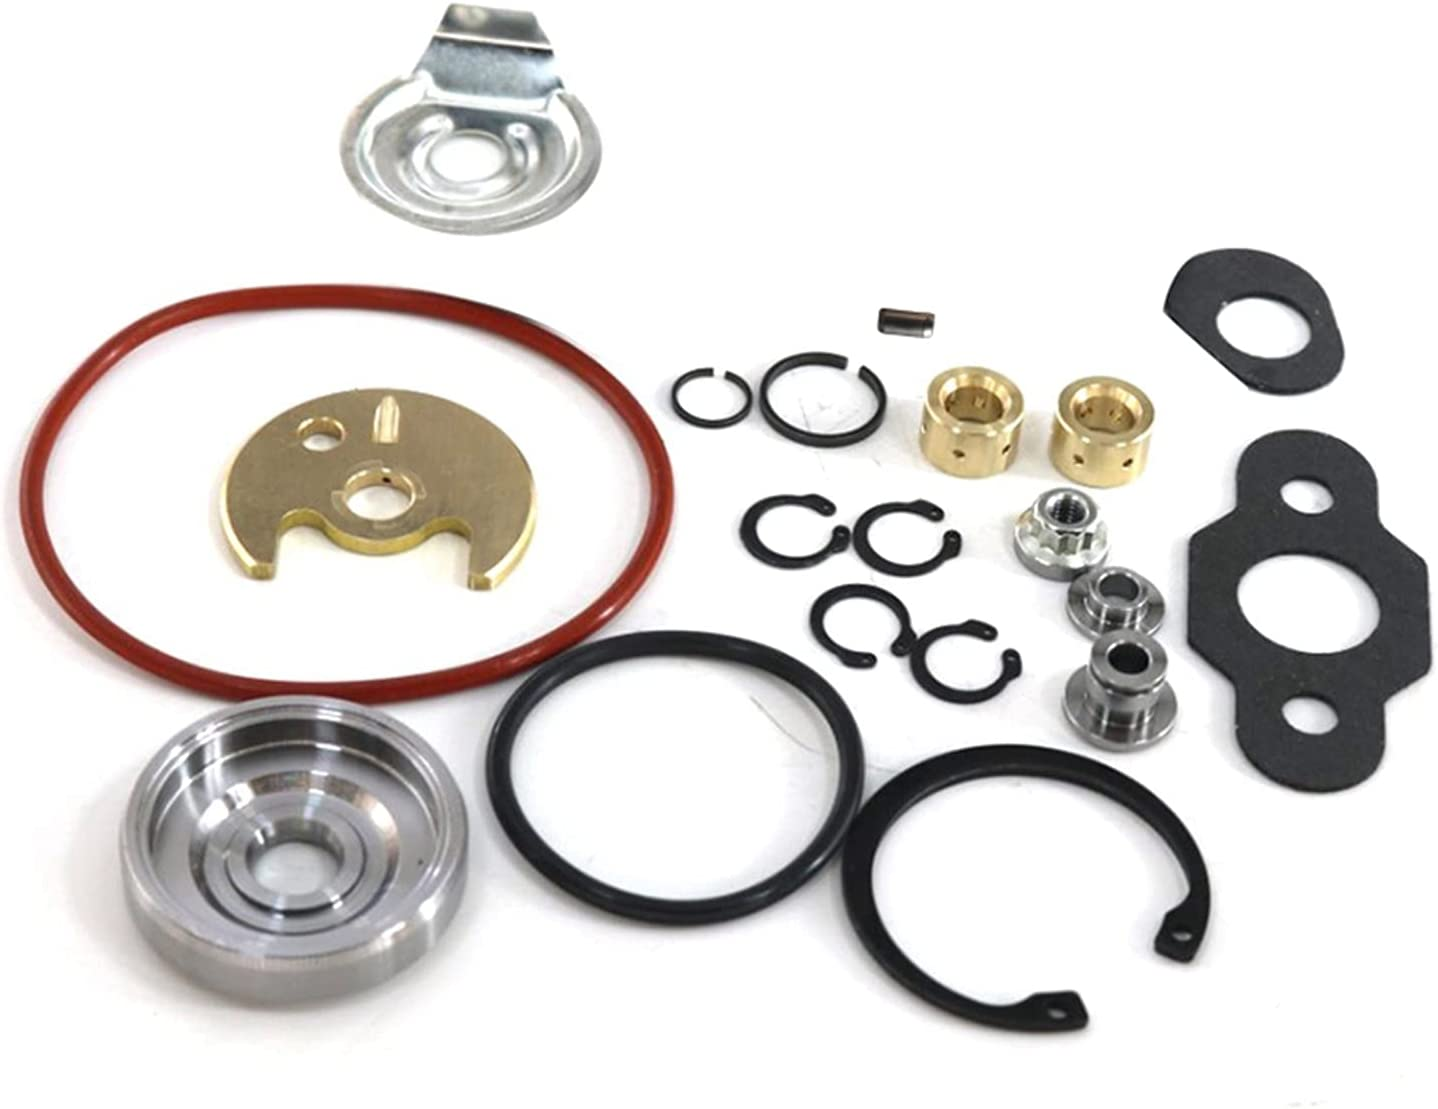 YINGYING Jzhen Store TD04 San Diego Mall Large special price !! TD04HL Turbo Turbocharger Kit T Repair